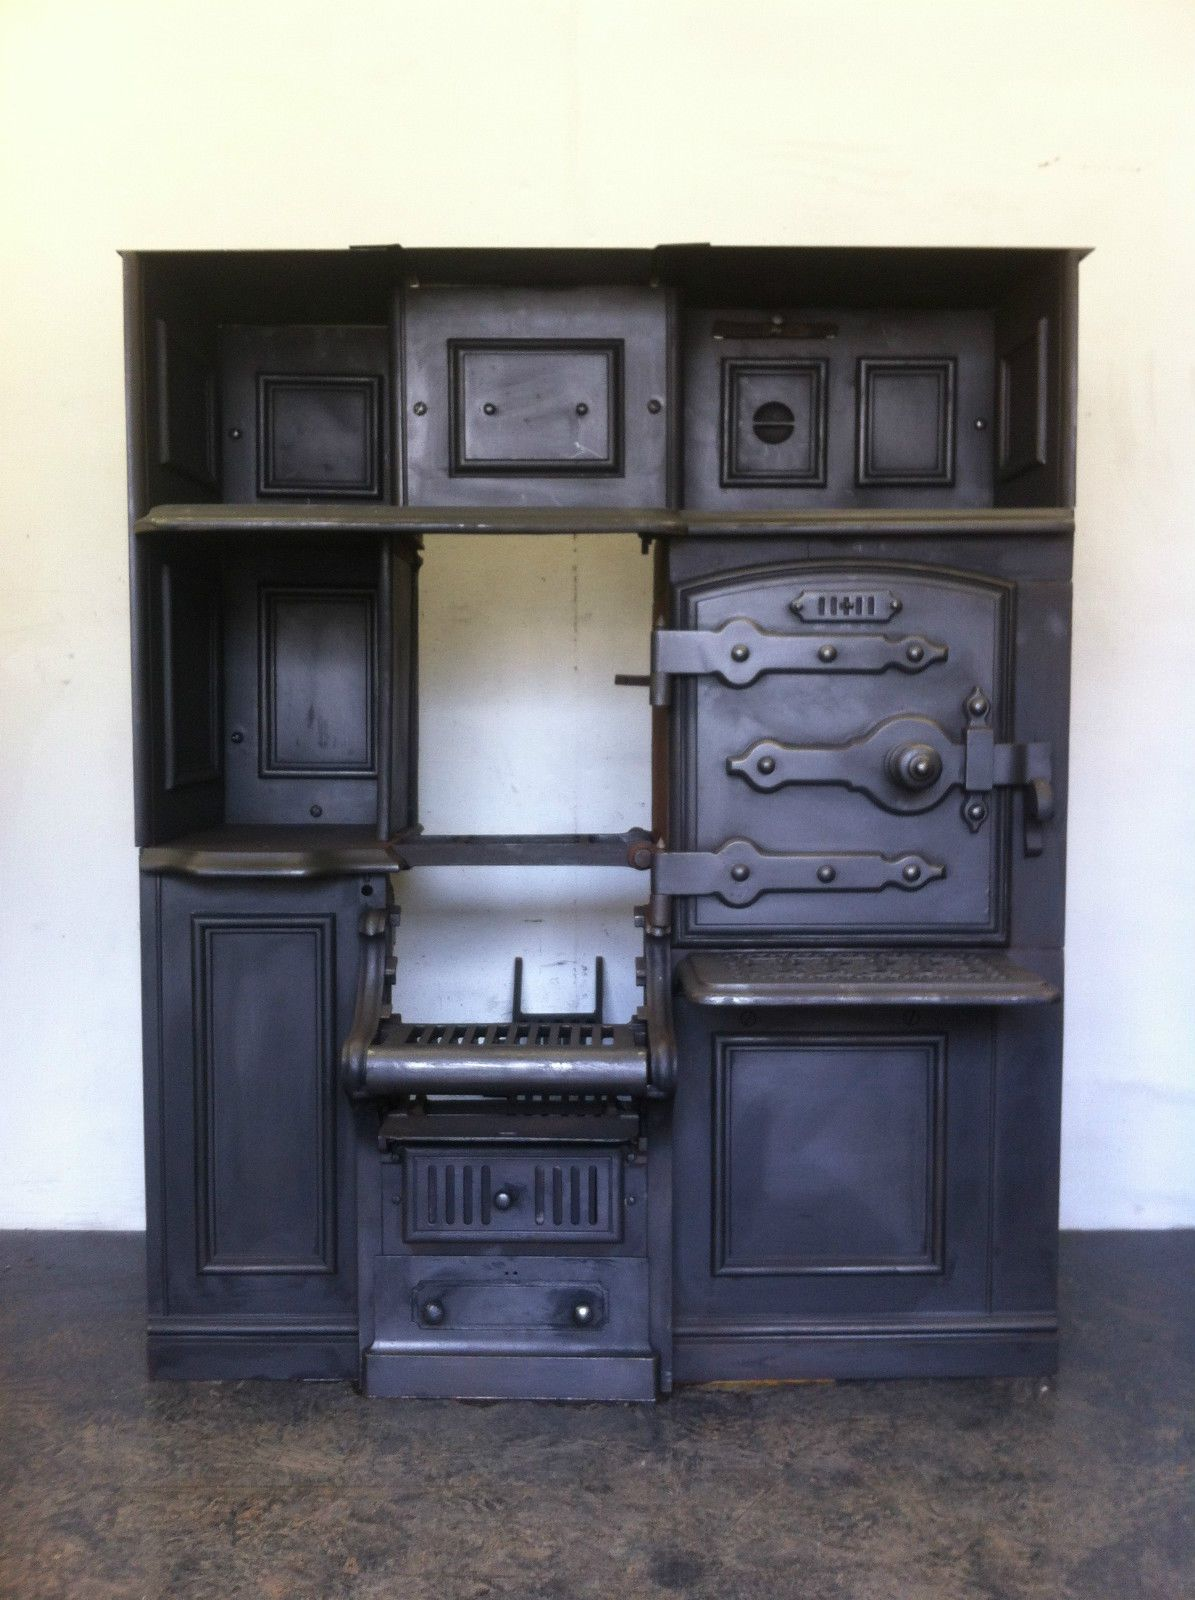 cast iron kitchen stove baxton studio cart restored antique victorian cooking range